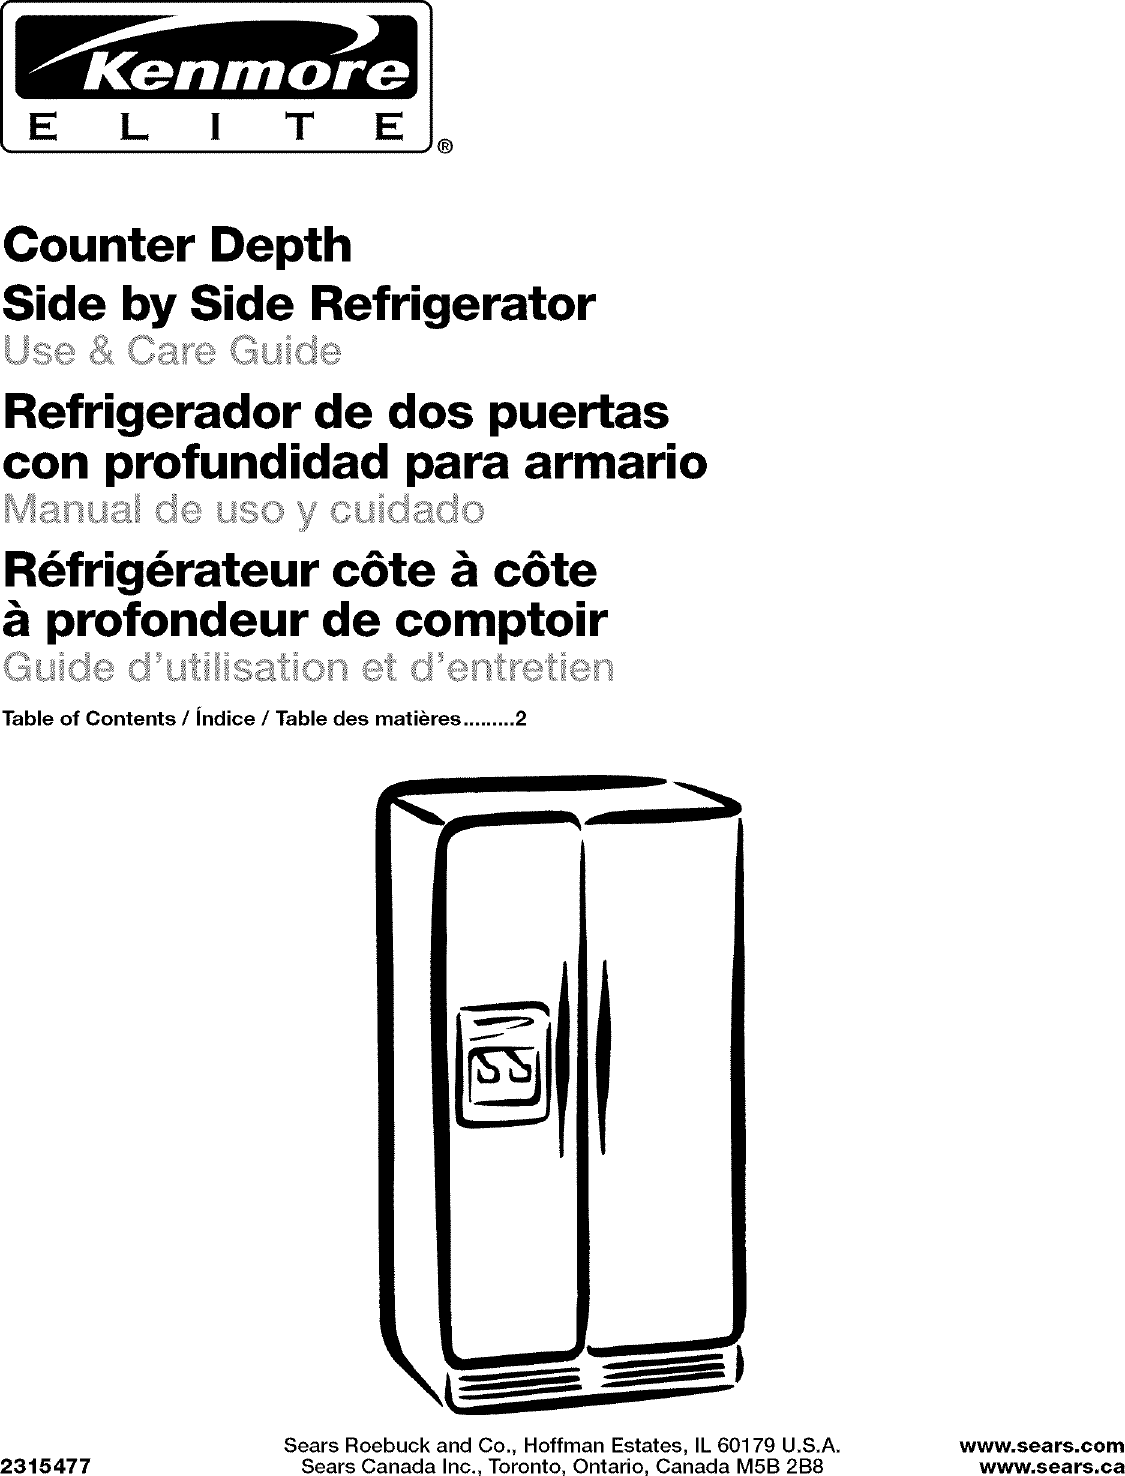 Kenmore Elite 10644422600 User Manual SIDE BY REFRIGERATOR